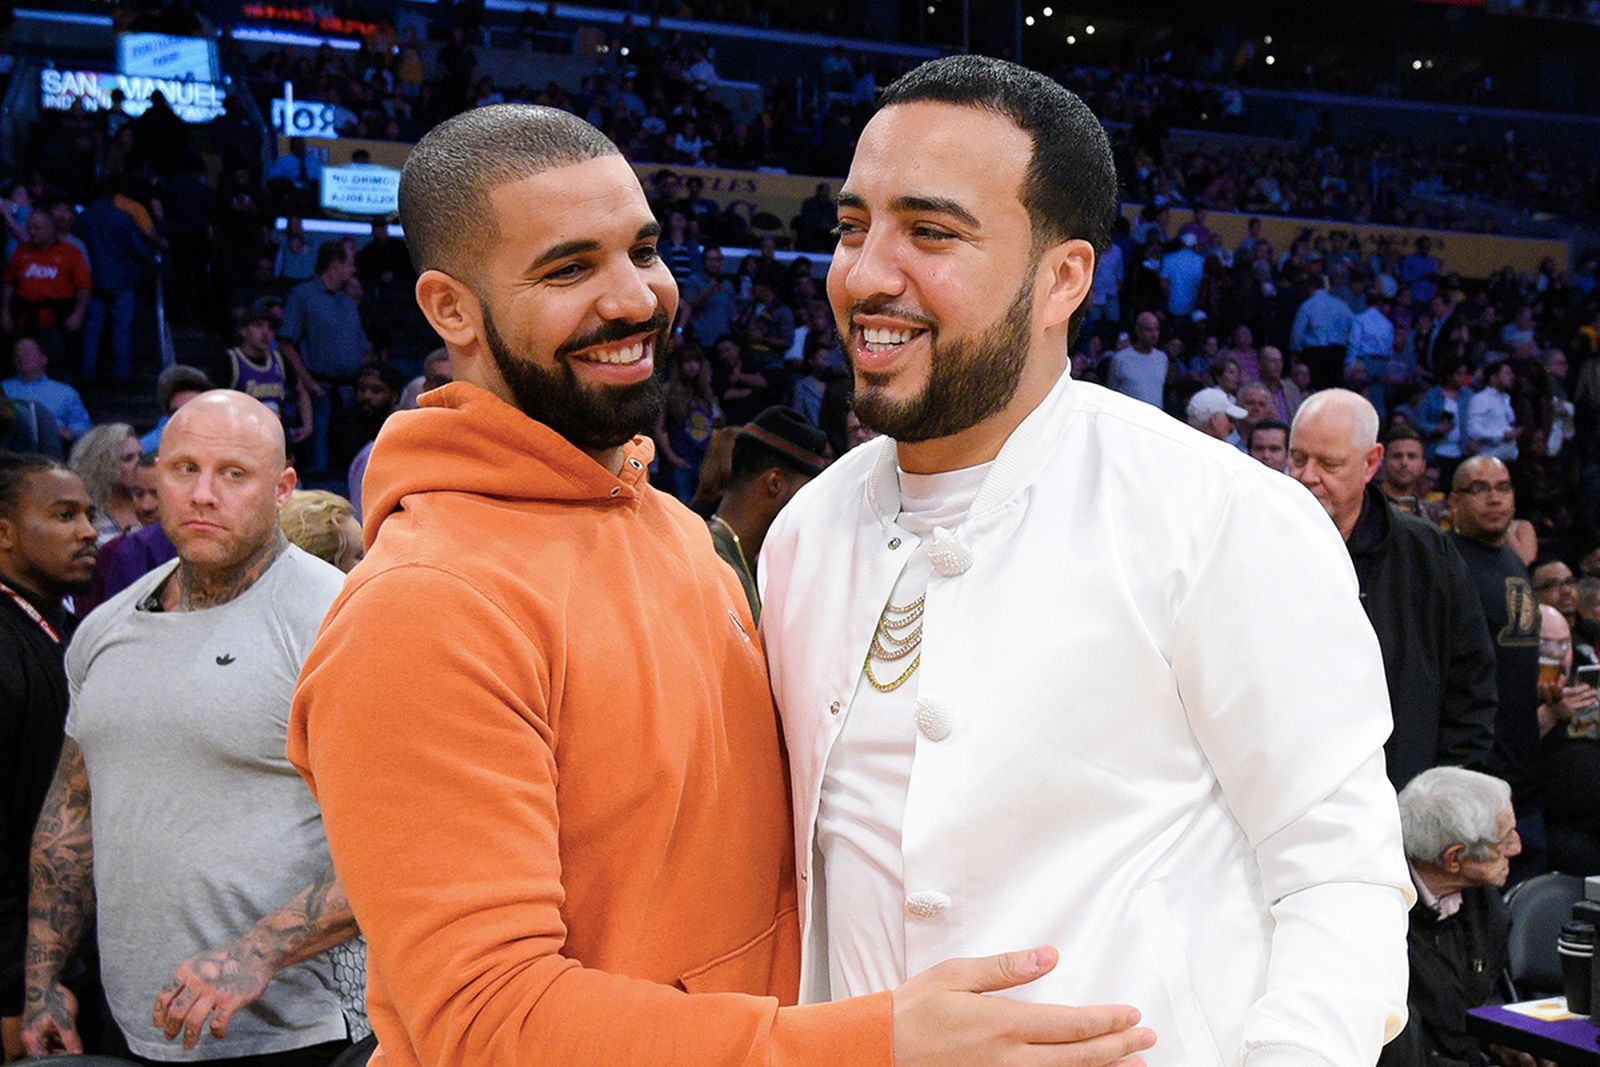 Drake and French Montana hugging court-side